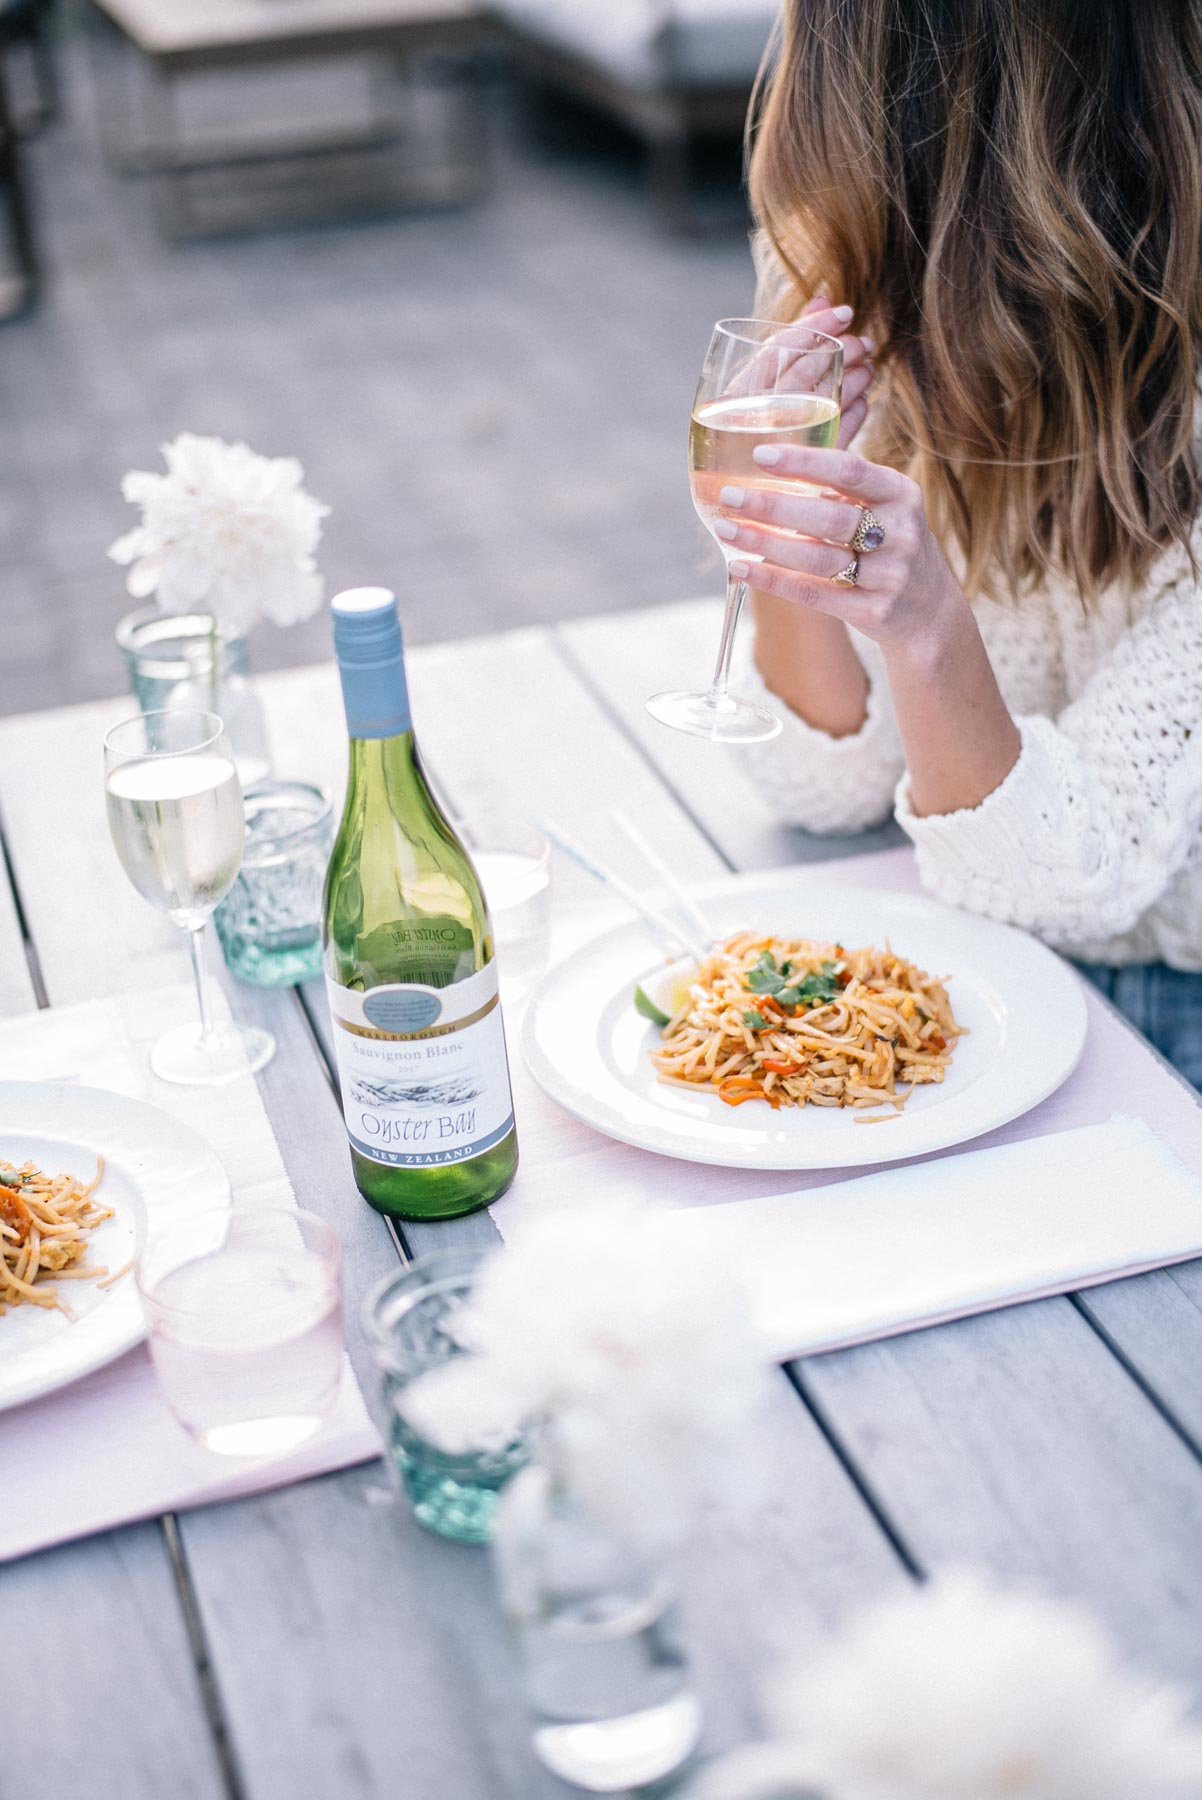 Jess Ann Kirby sips on Oyster Bay wine during an at-home date night